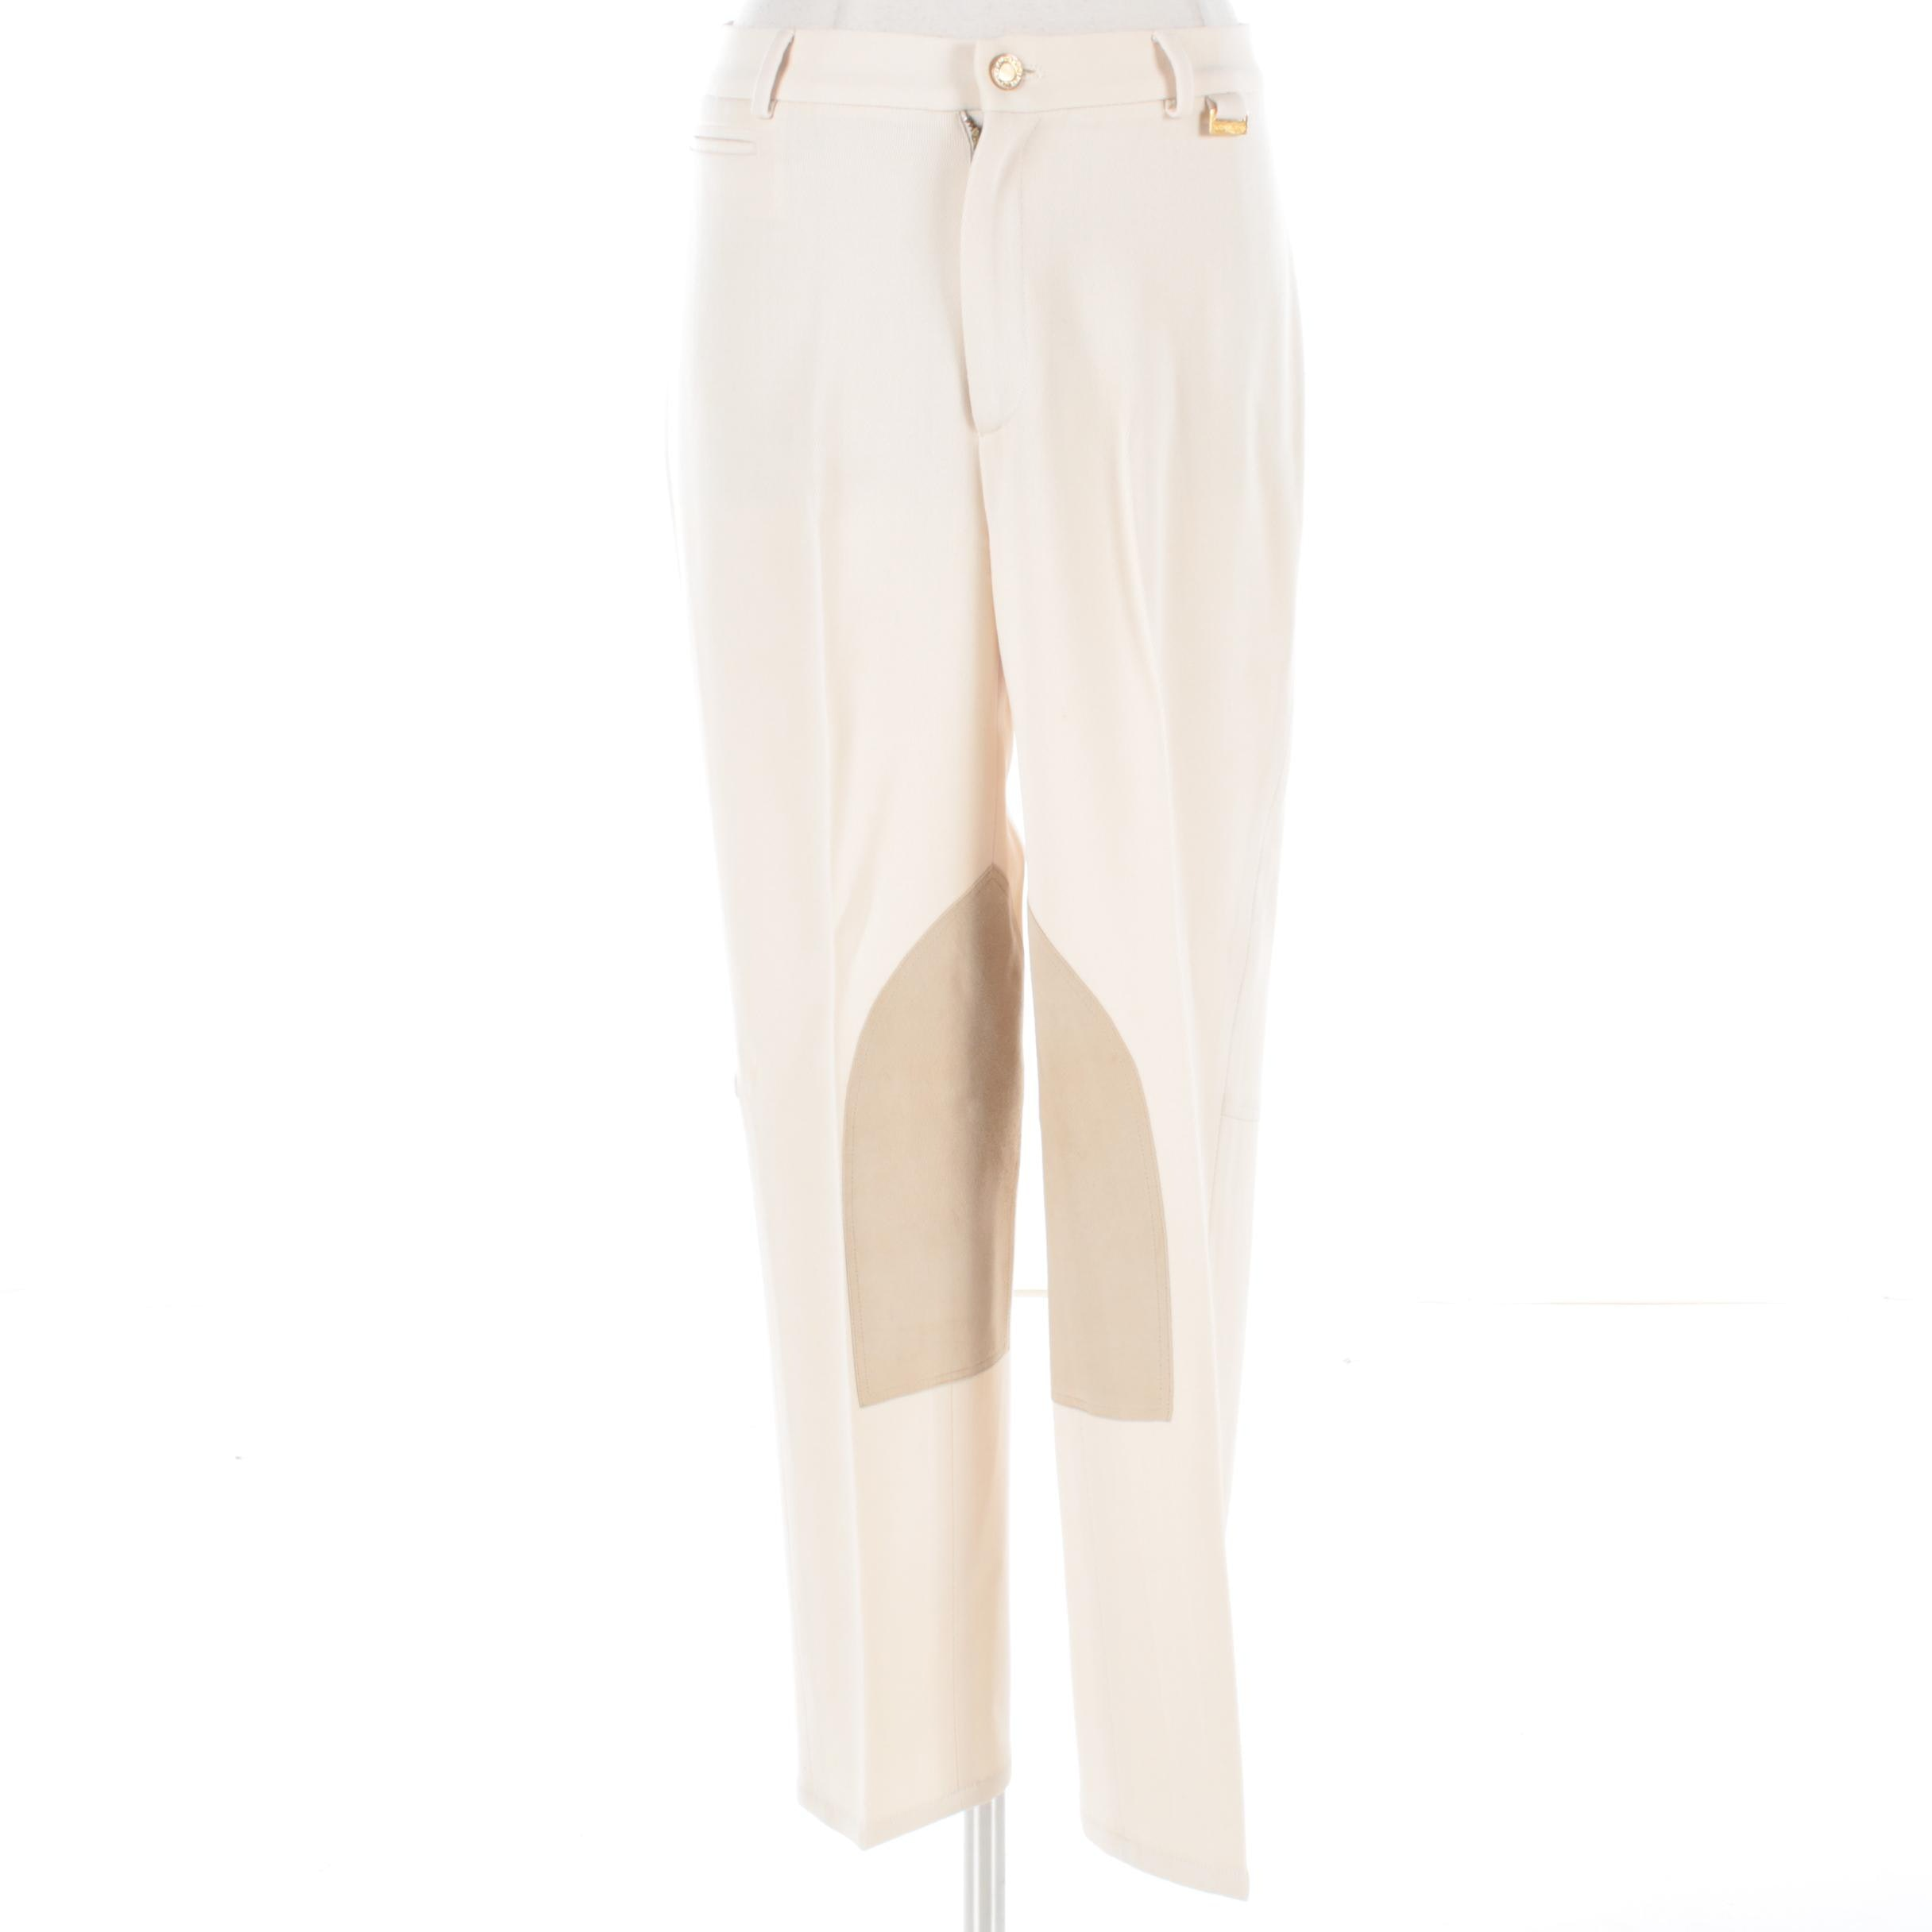 Women's Ralph Lauren Cream Jodhpur Style Pants